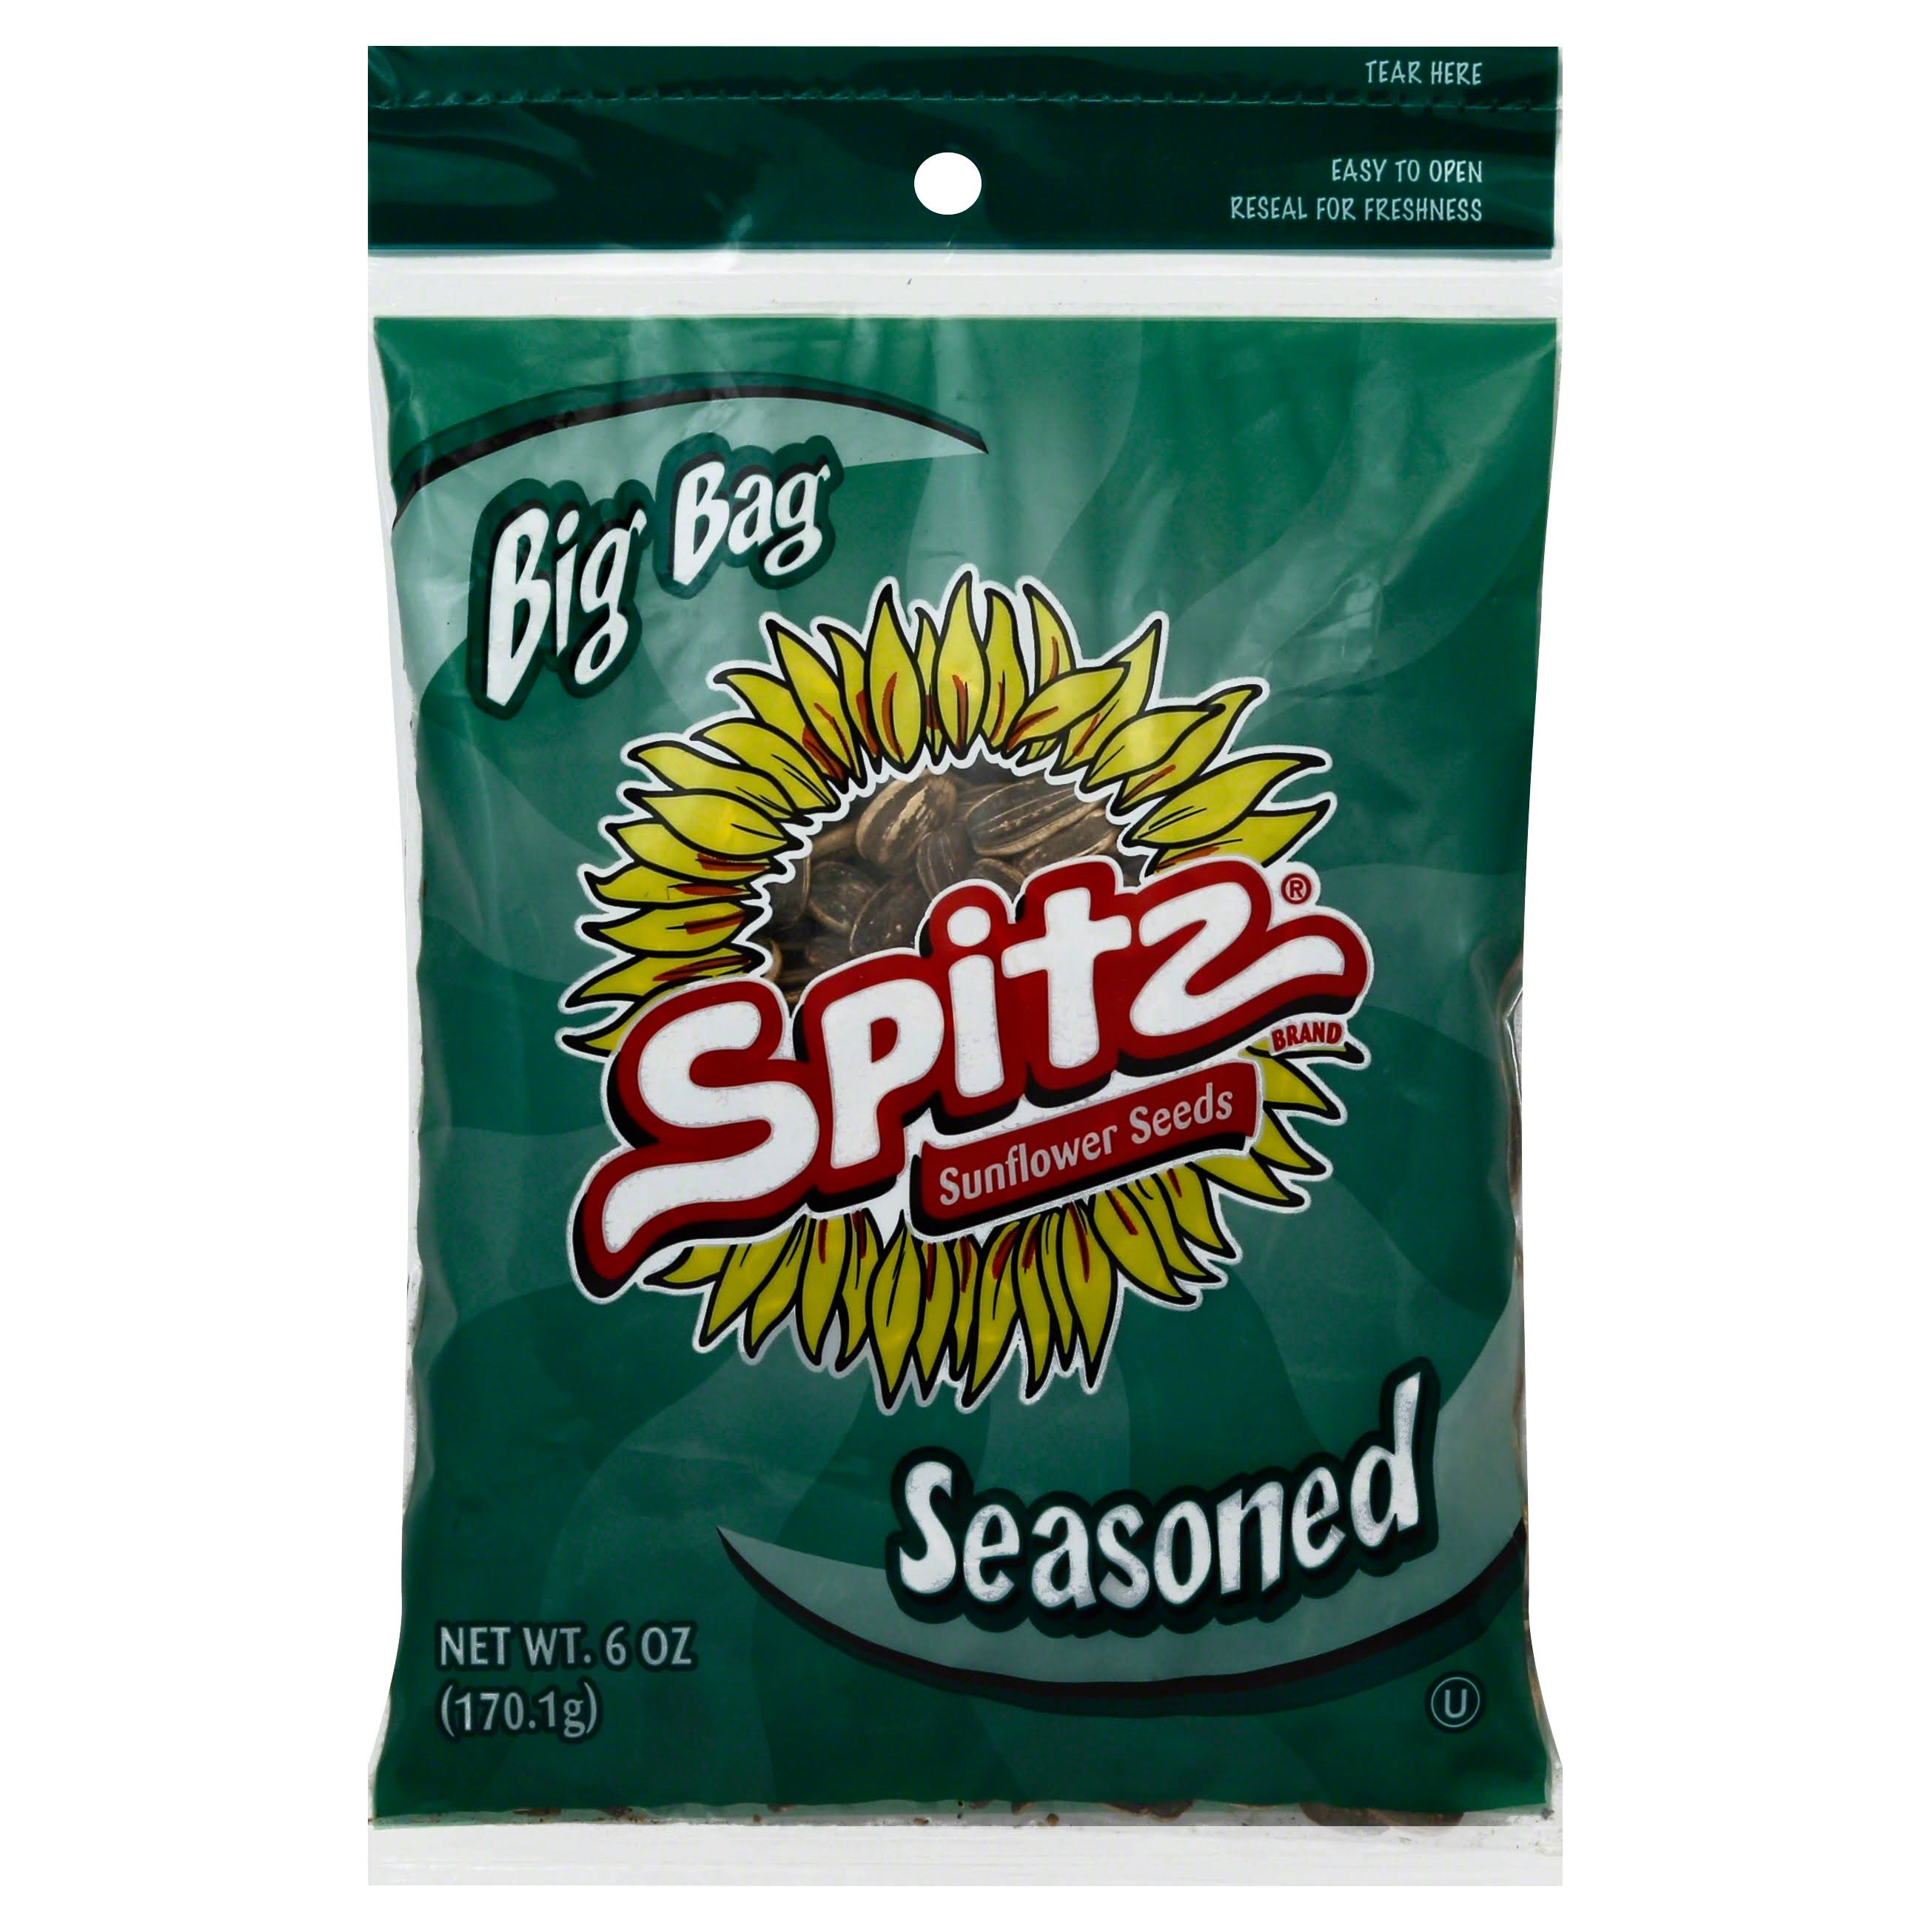 Spitz Seasoned Sunflower Seed